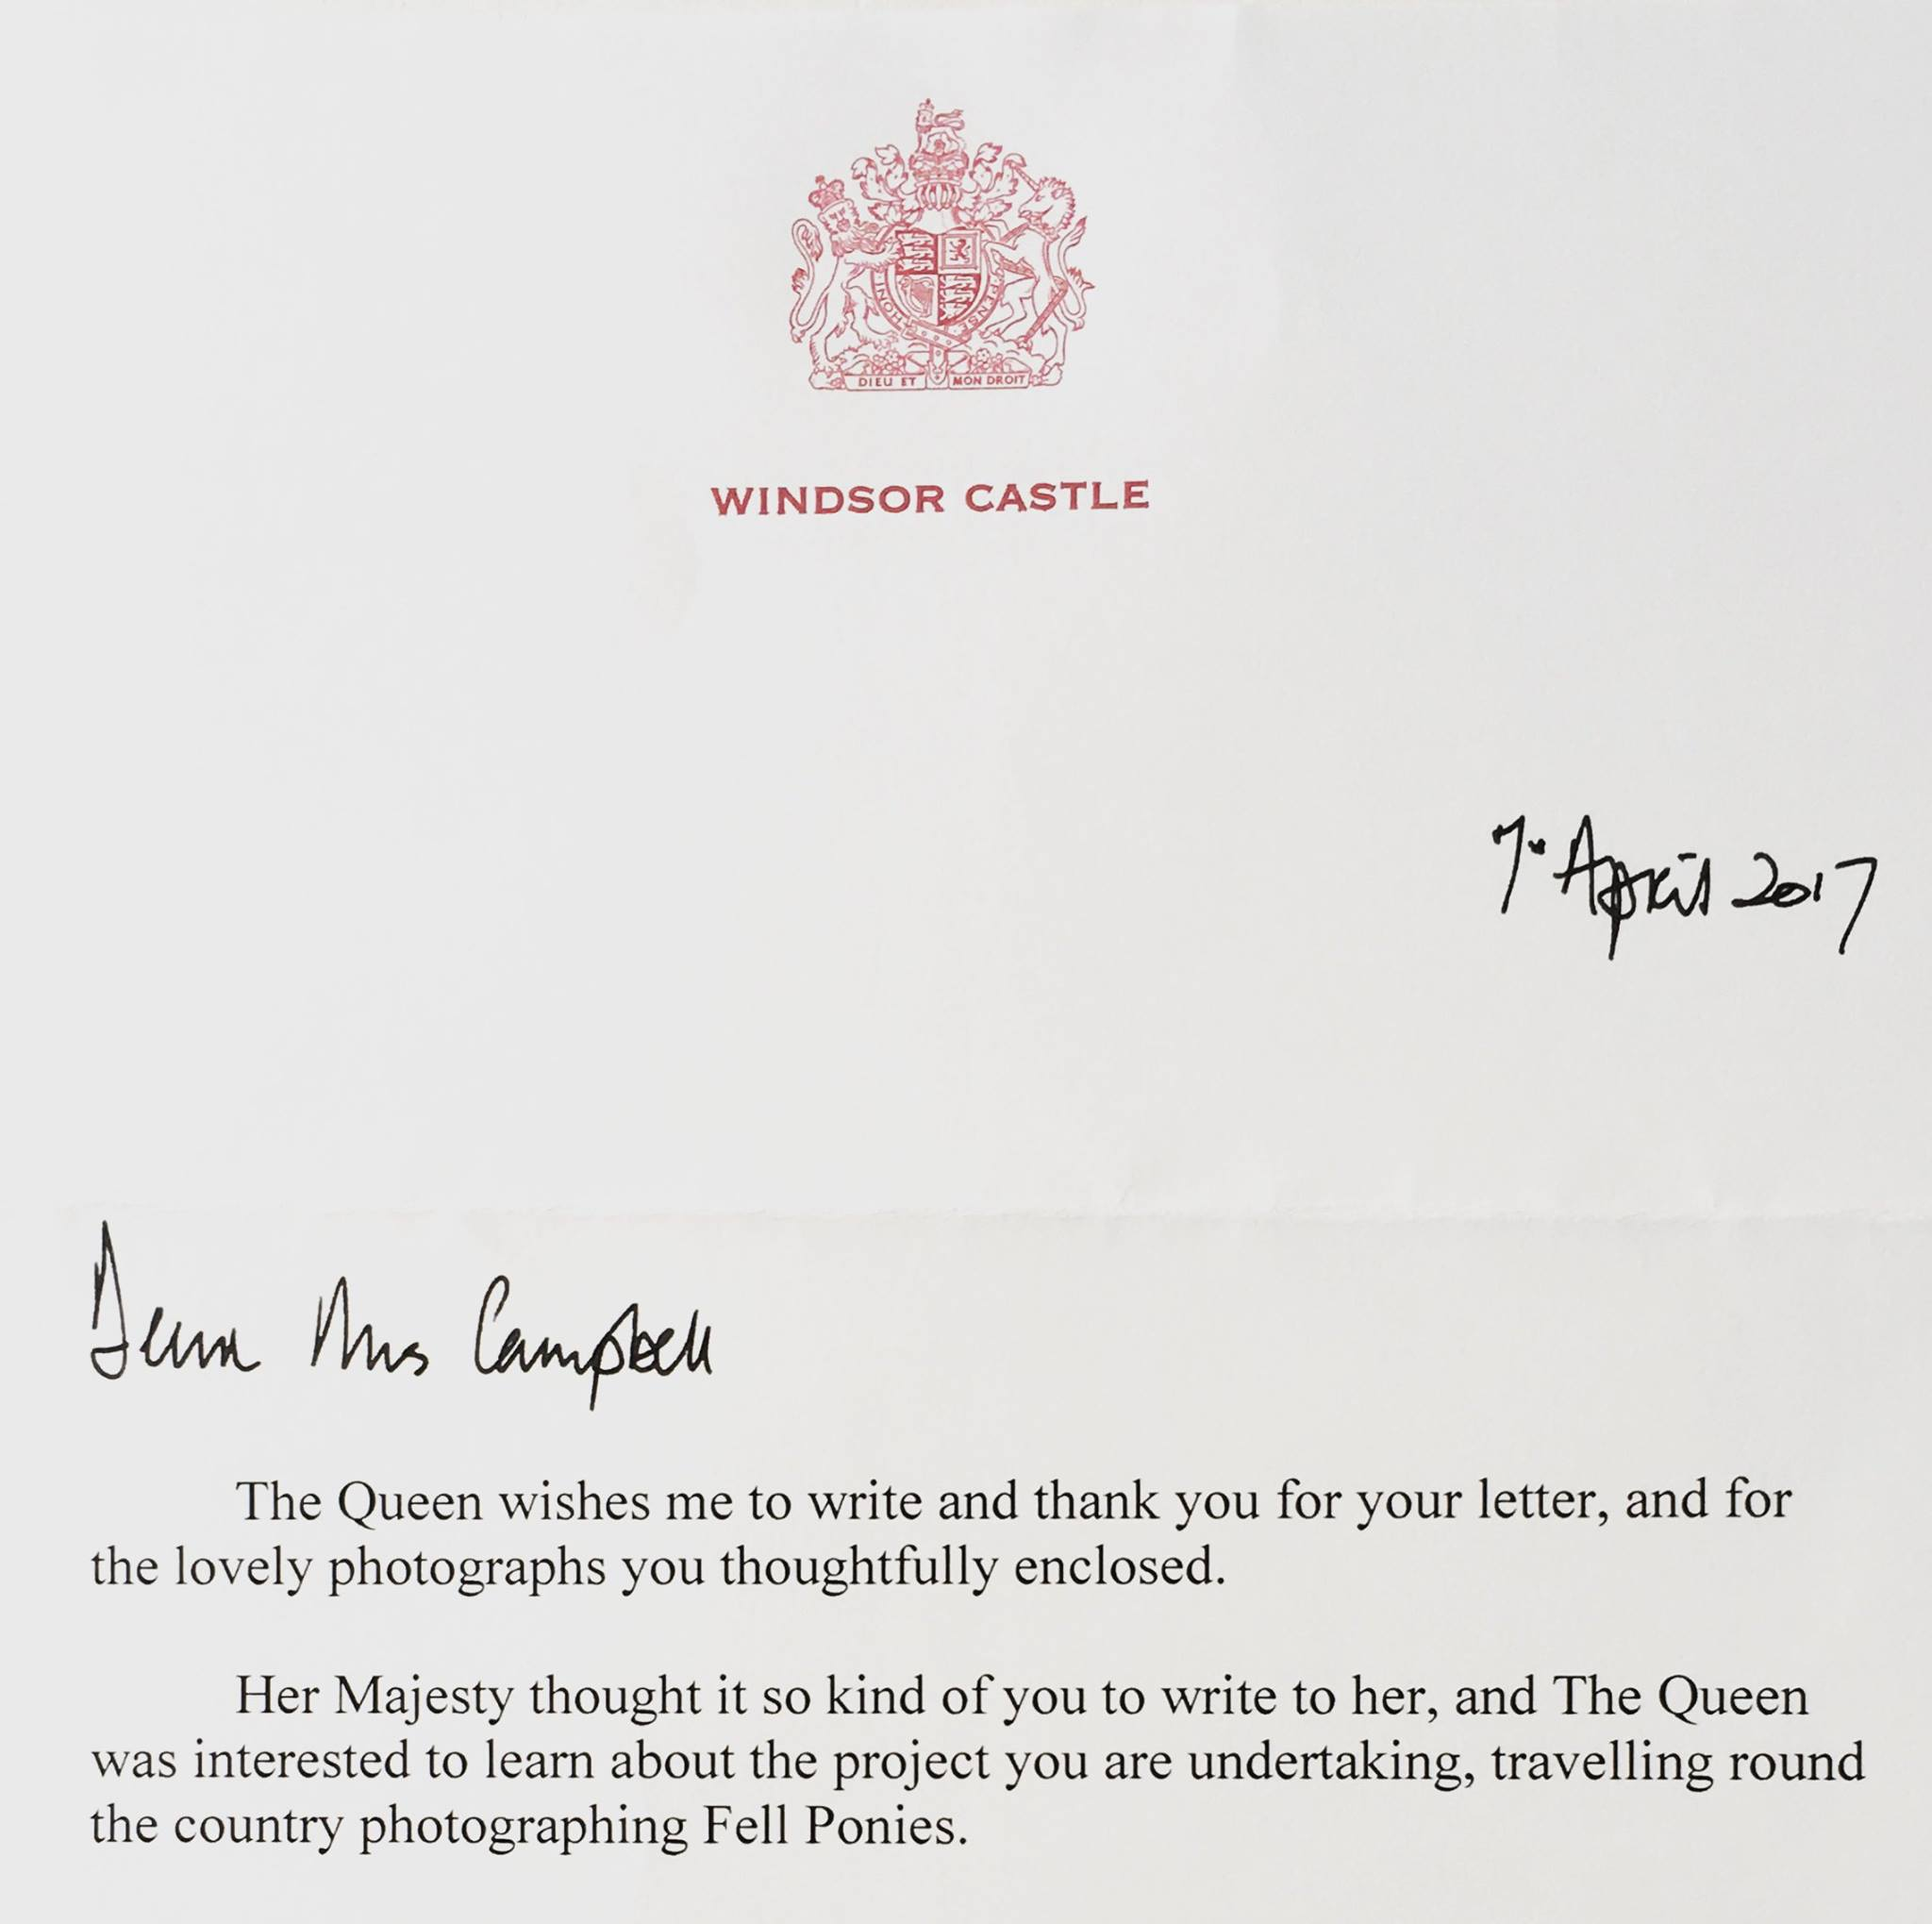 Letter from Her Majesty the Queen